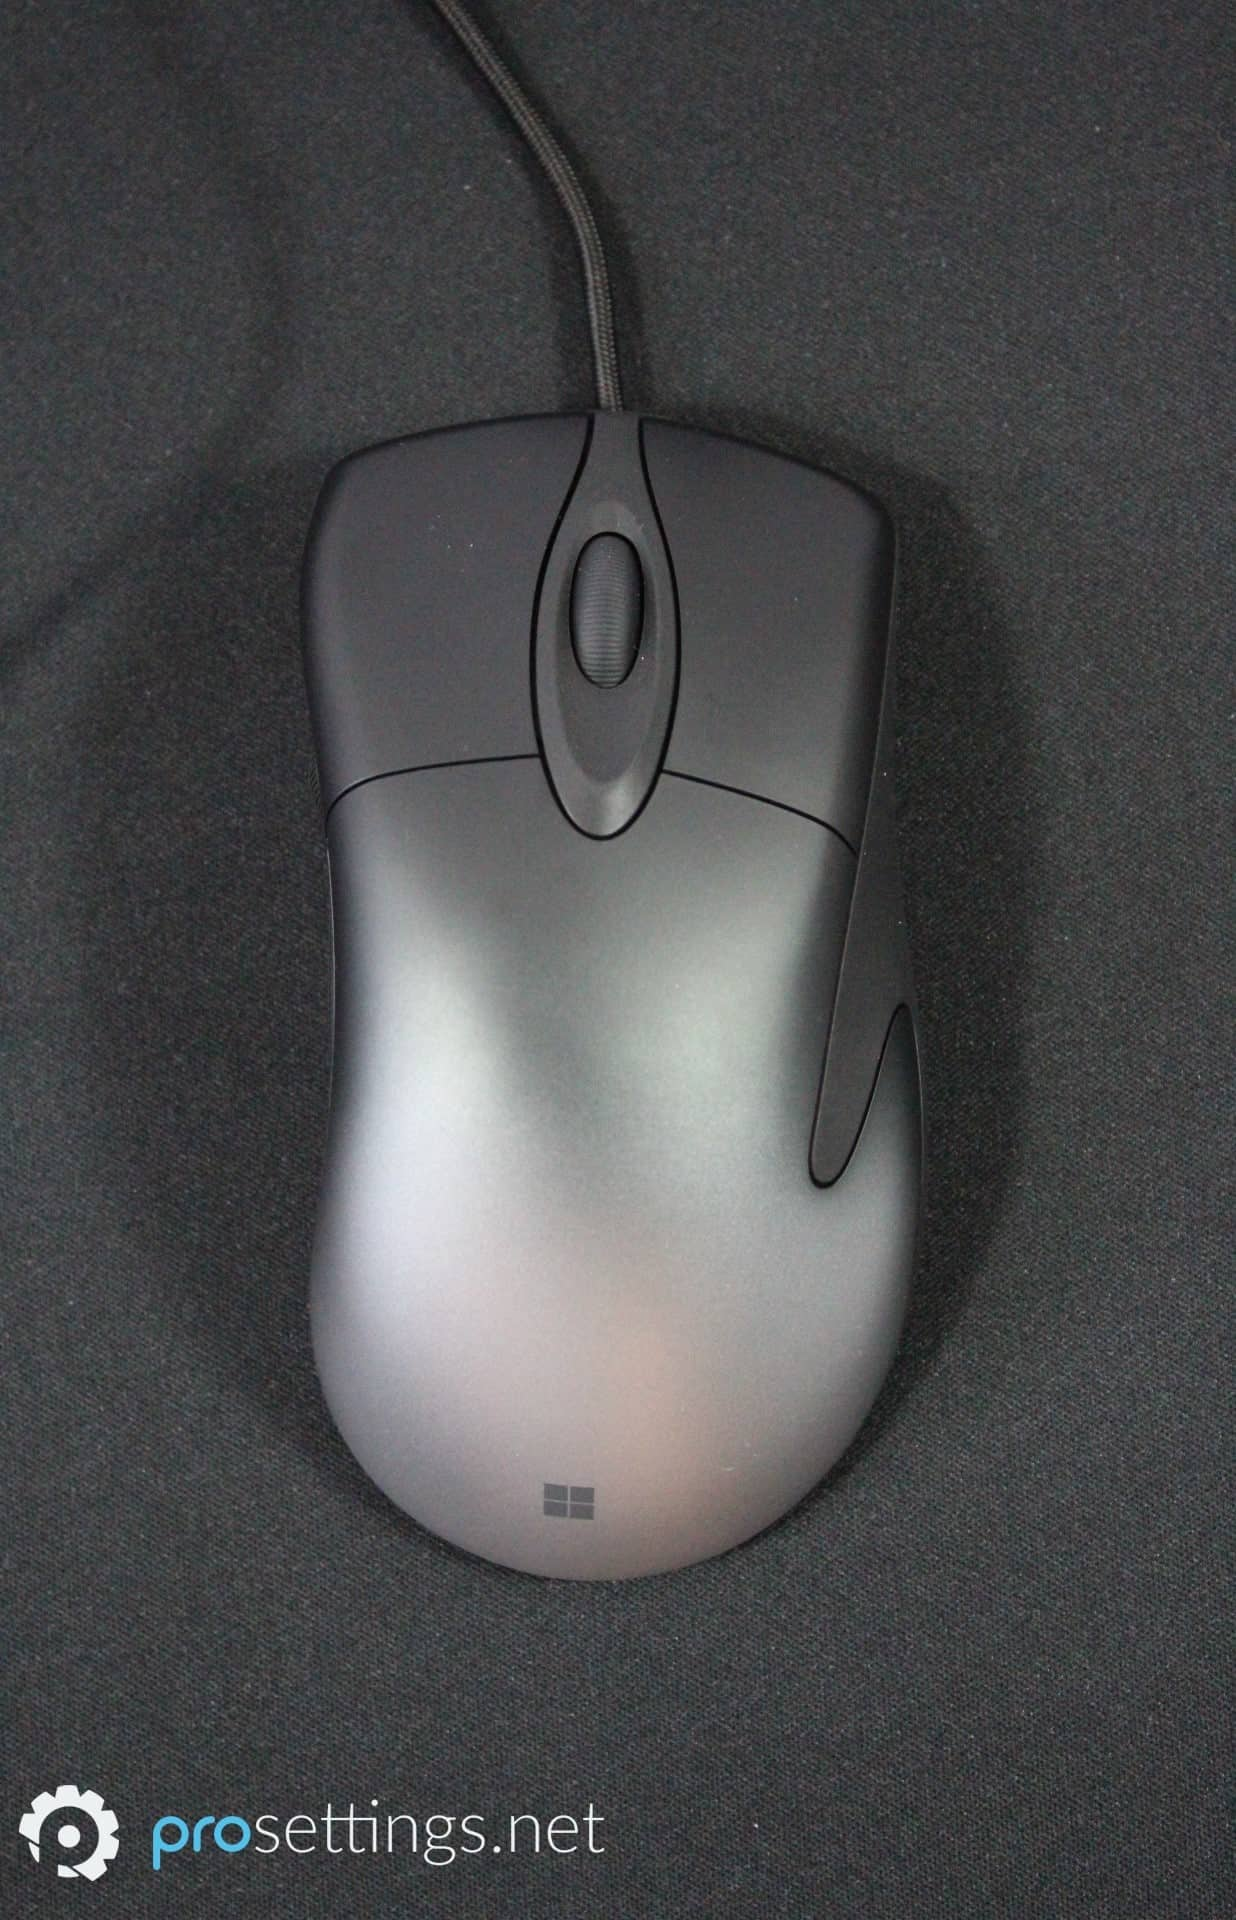 Microsoft Intellimouse Pro Review Top